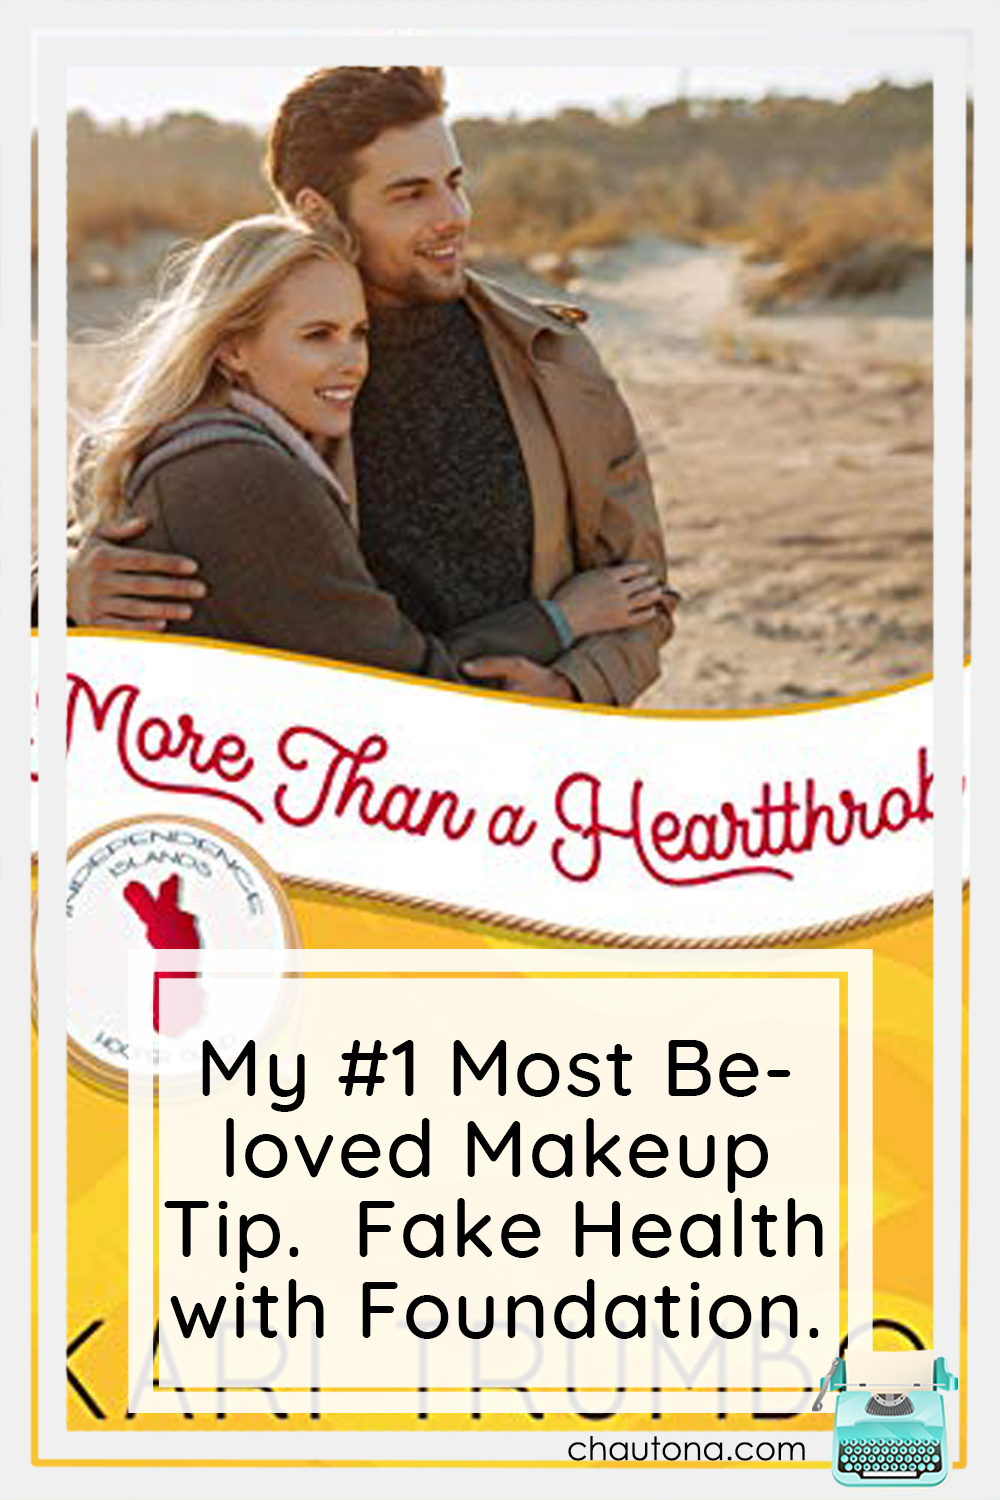 Kari Trumbo's More Than a Heartthrob released, and we were asked to give our best makeup tips for her release. Well, here's mine! via @chautonahavig